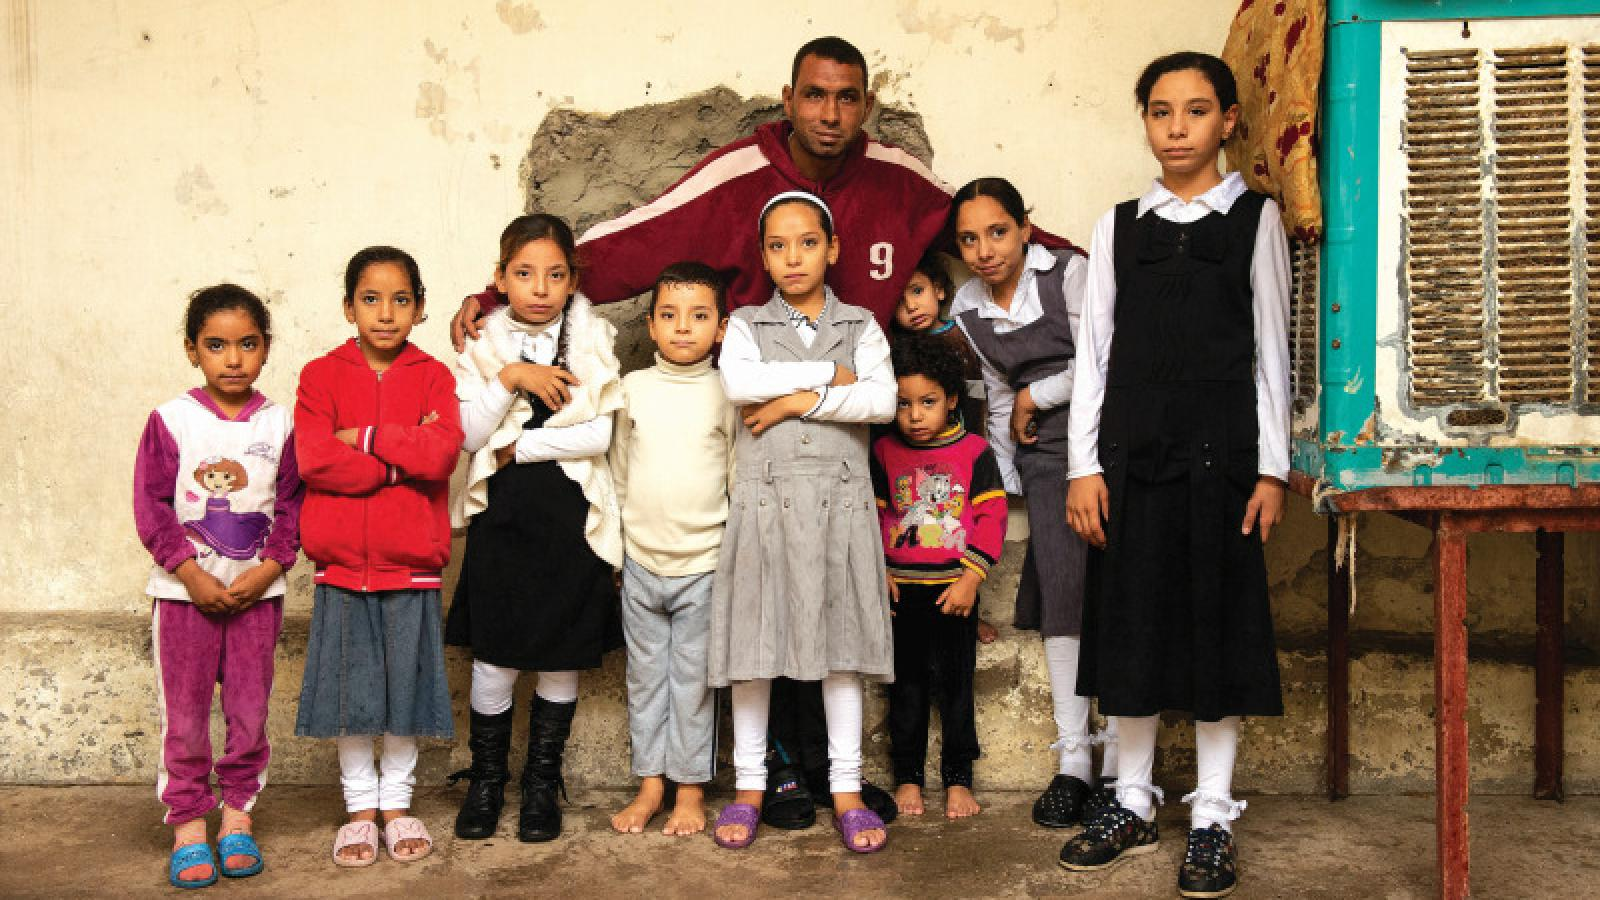 Ahmad and the nine children, he provides for, in front of their house which is now in a better condition thanks to Danish support. Photo: Philip Hartzner